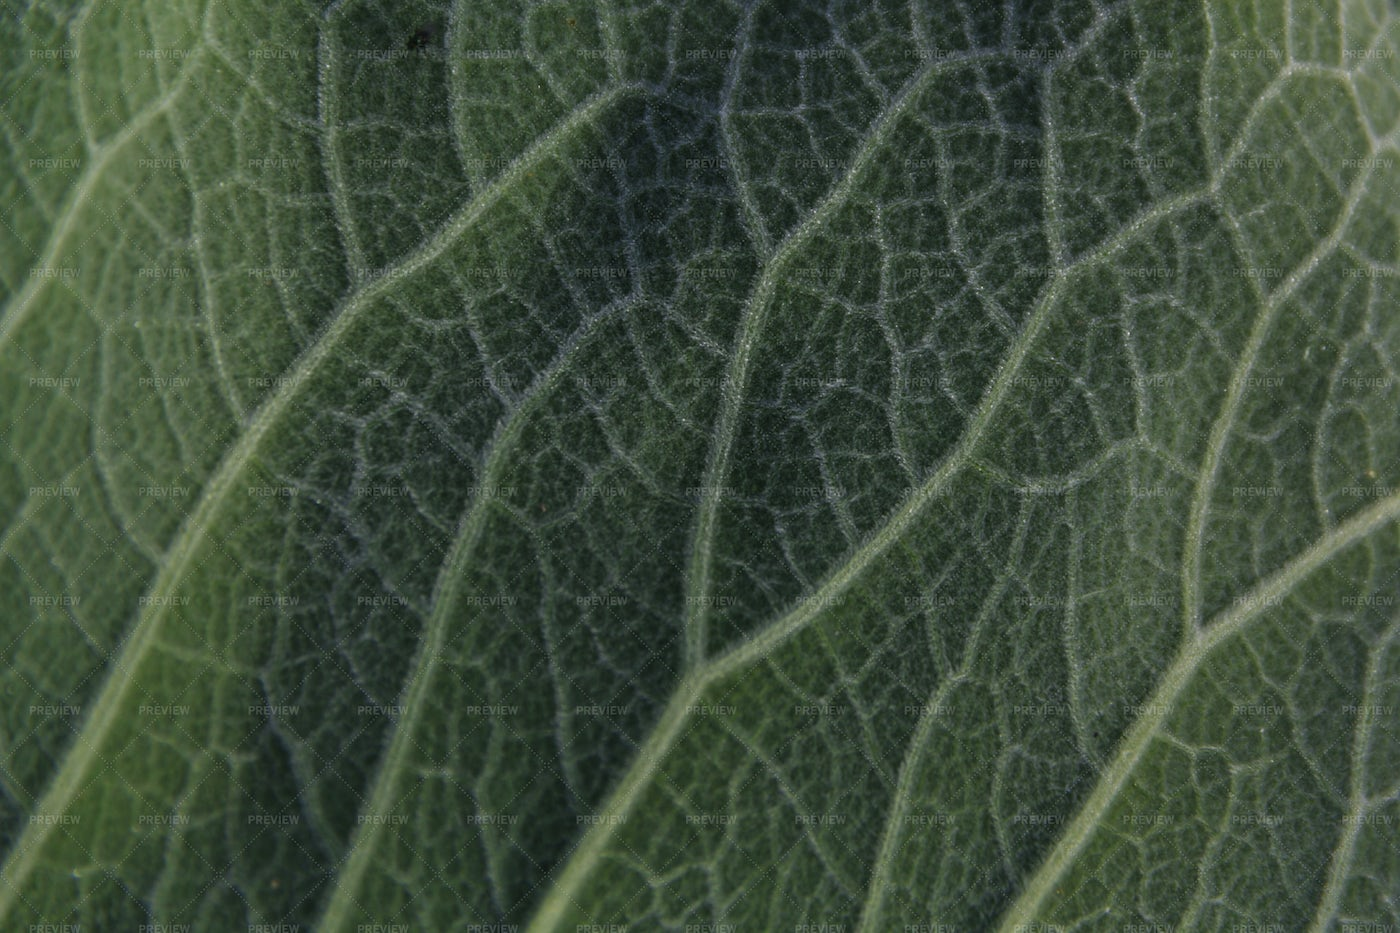 Green Leaf Texture Stock Photos Motion Array I will show you have to use an image with an alpha channel in blender 2.8 to only show the texture that you want to see. green leaf texture stock photos